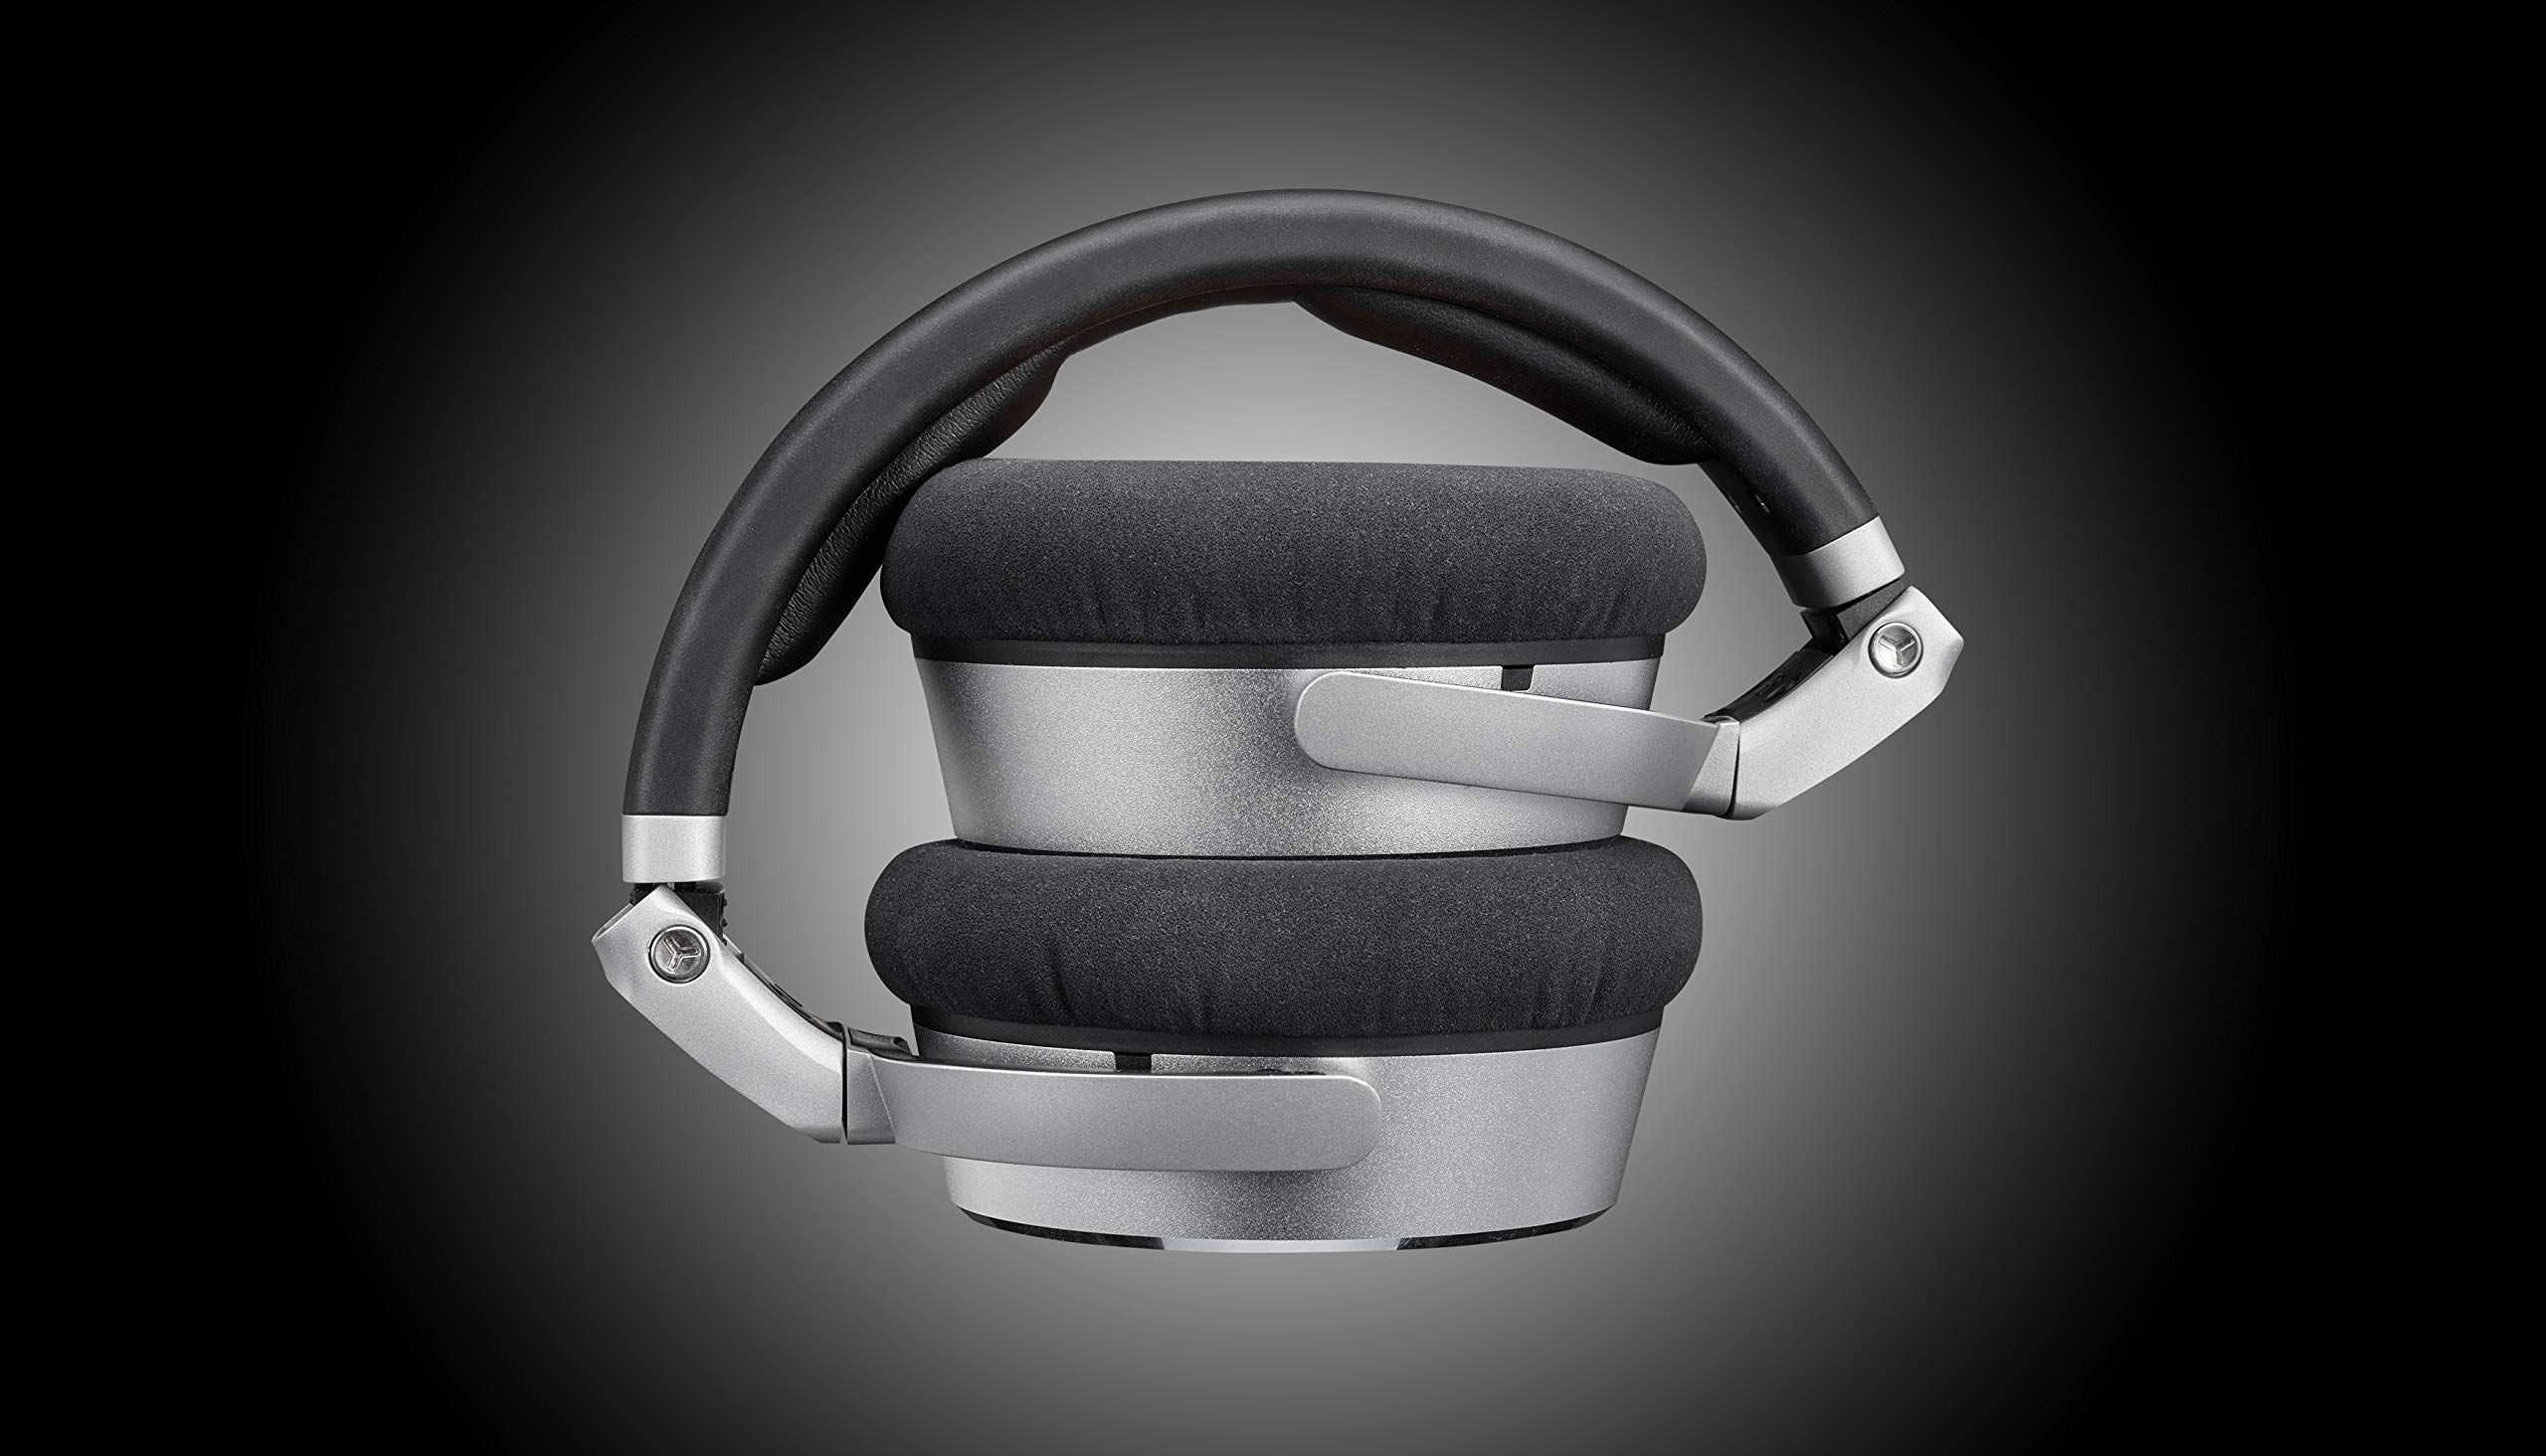 Neumann Studio Headphones (NDH 20 Closed-Back Monitoring He by Neumann (Image #7)